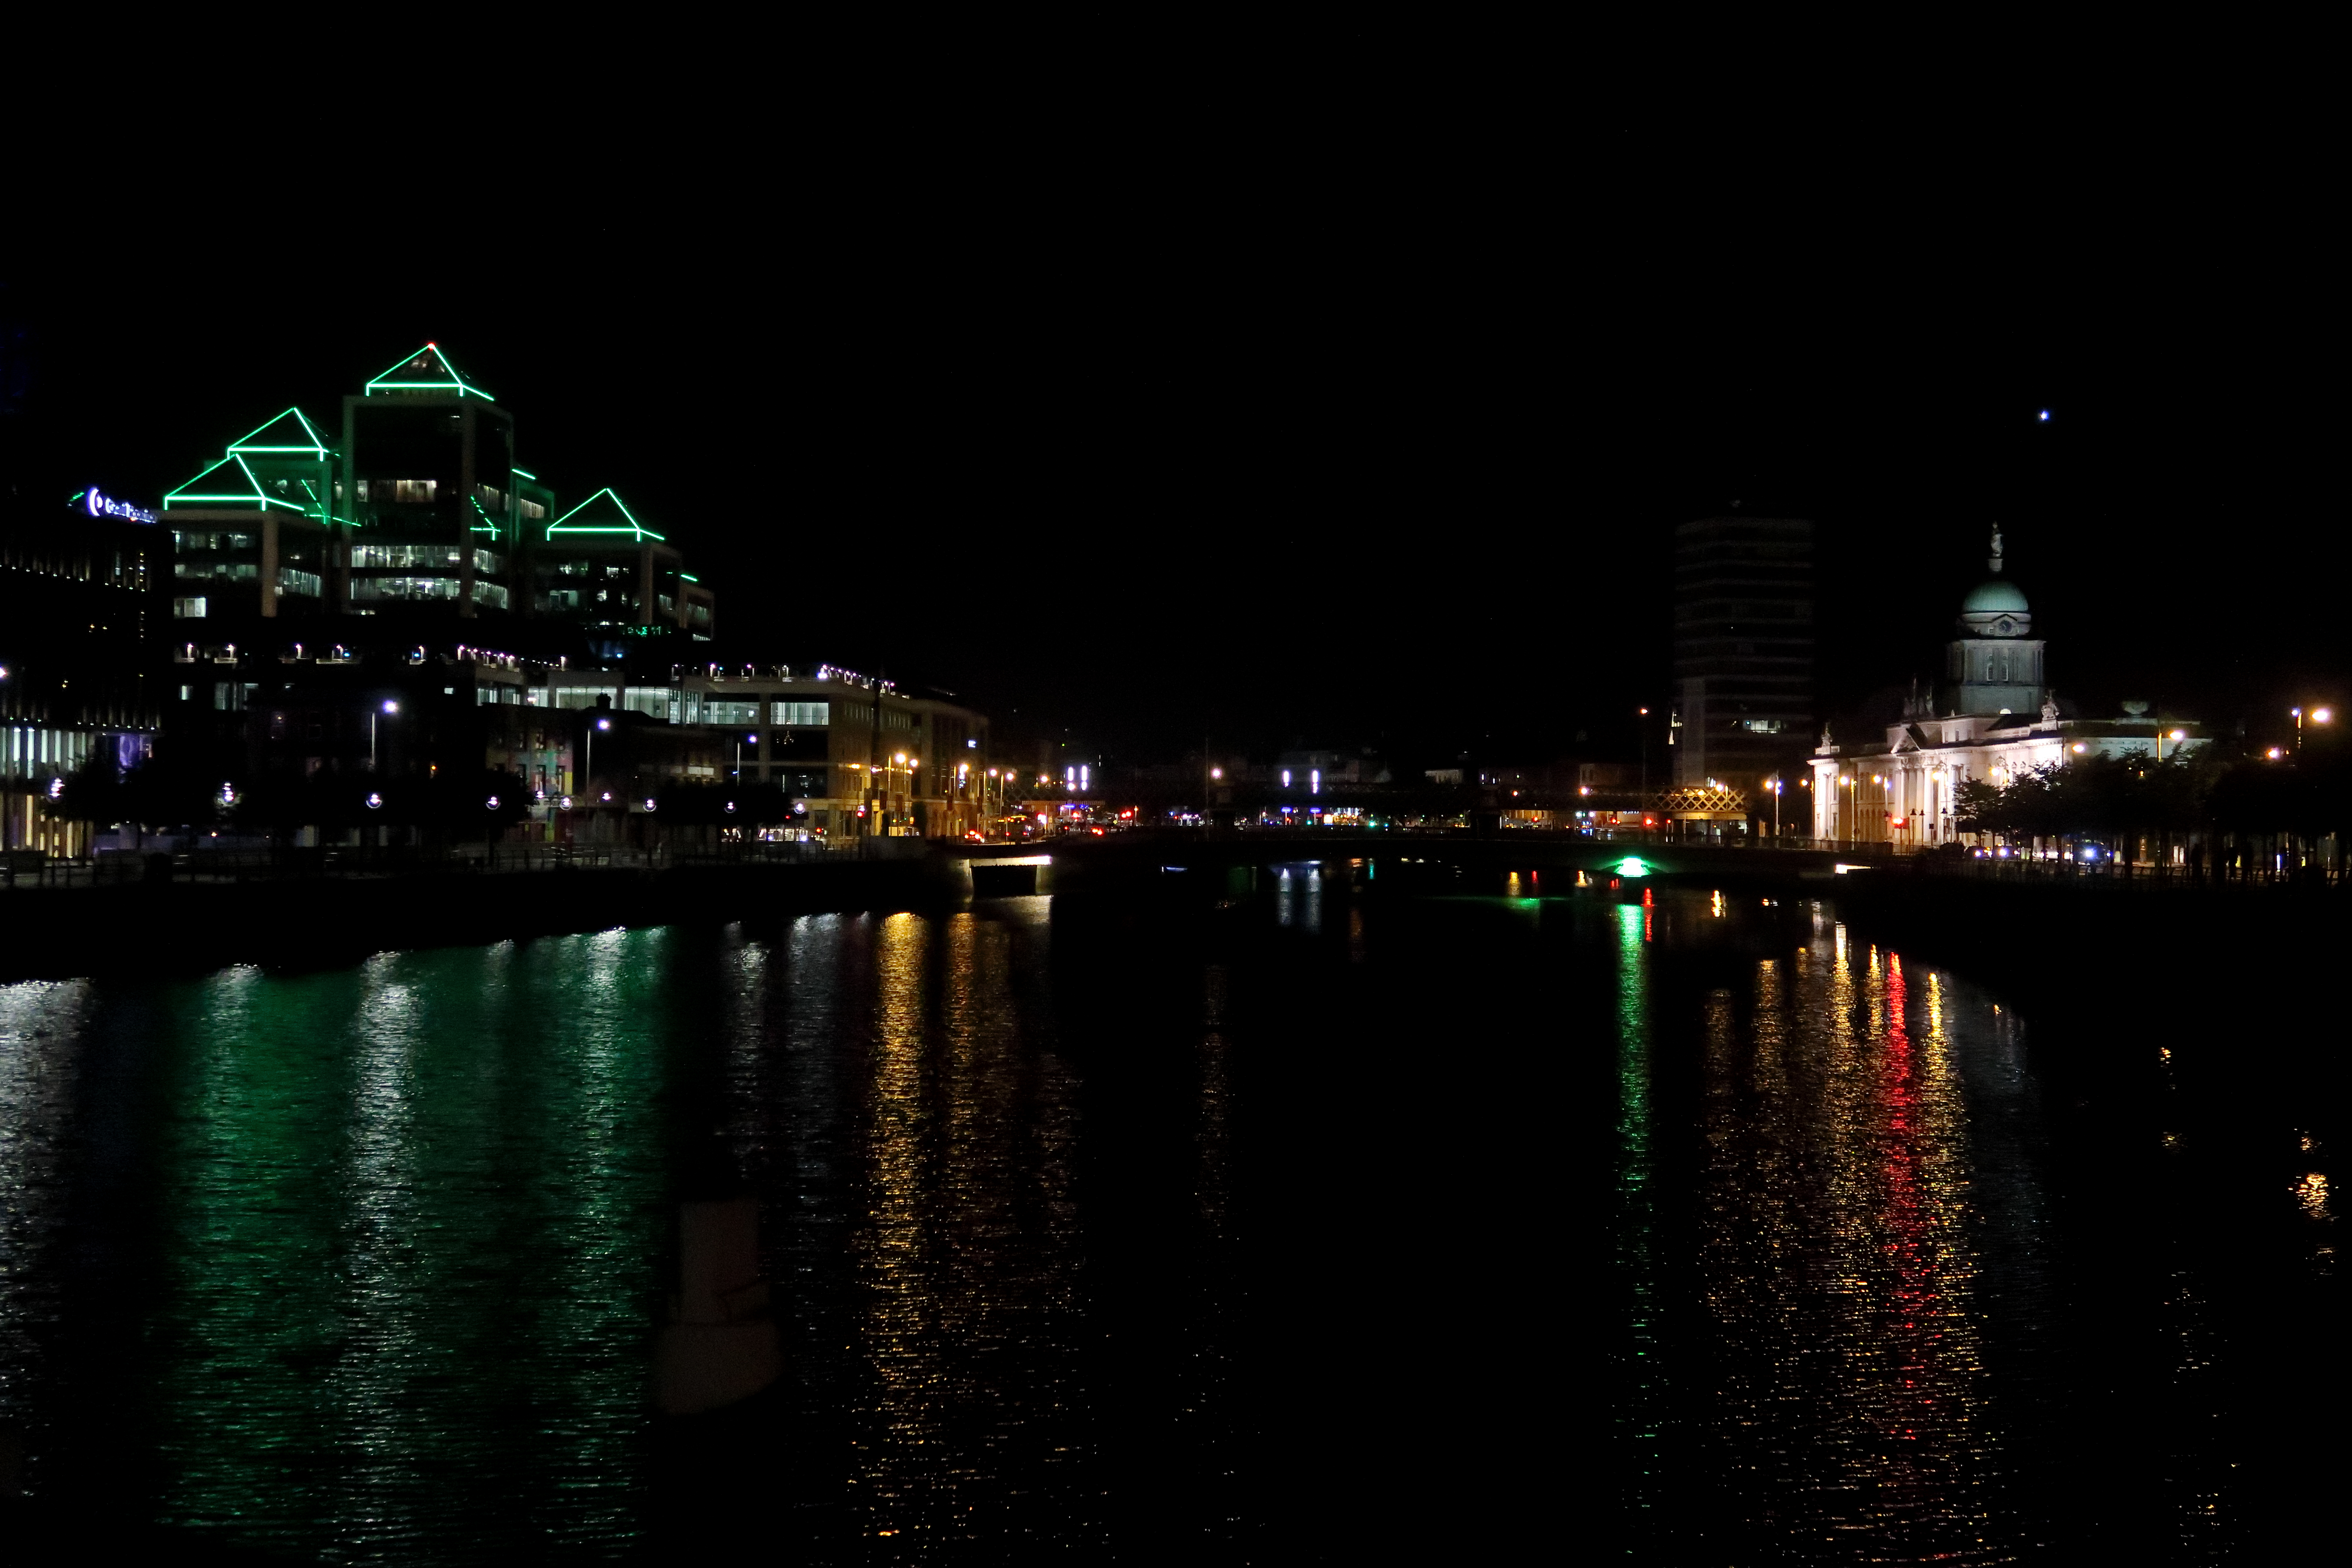 35 Down the River Liffey at night